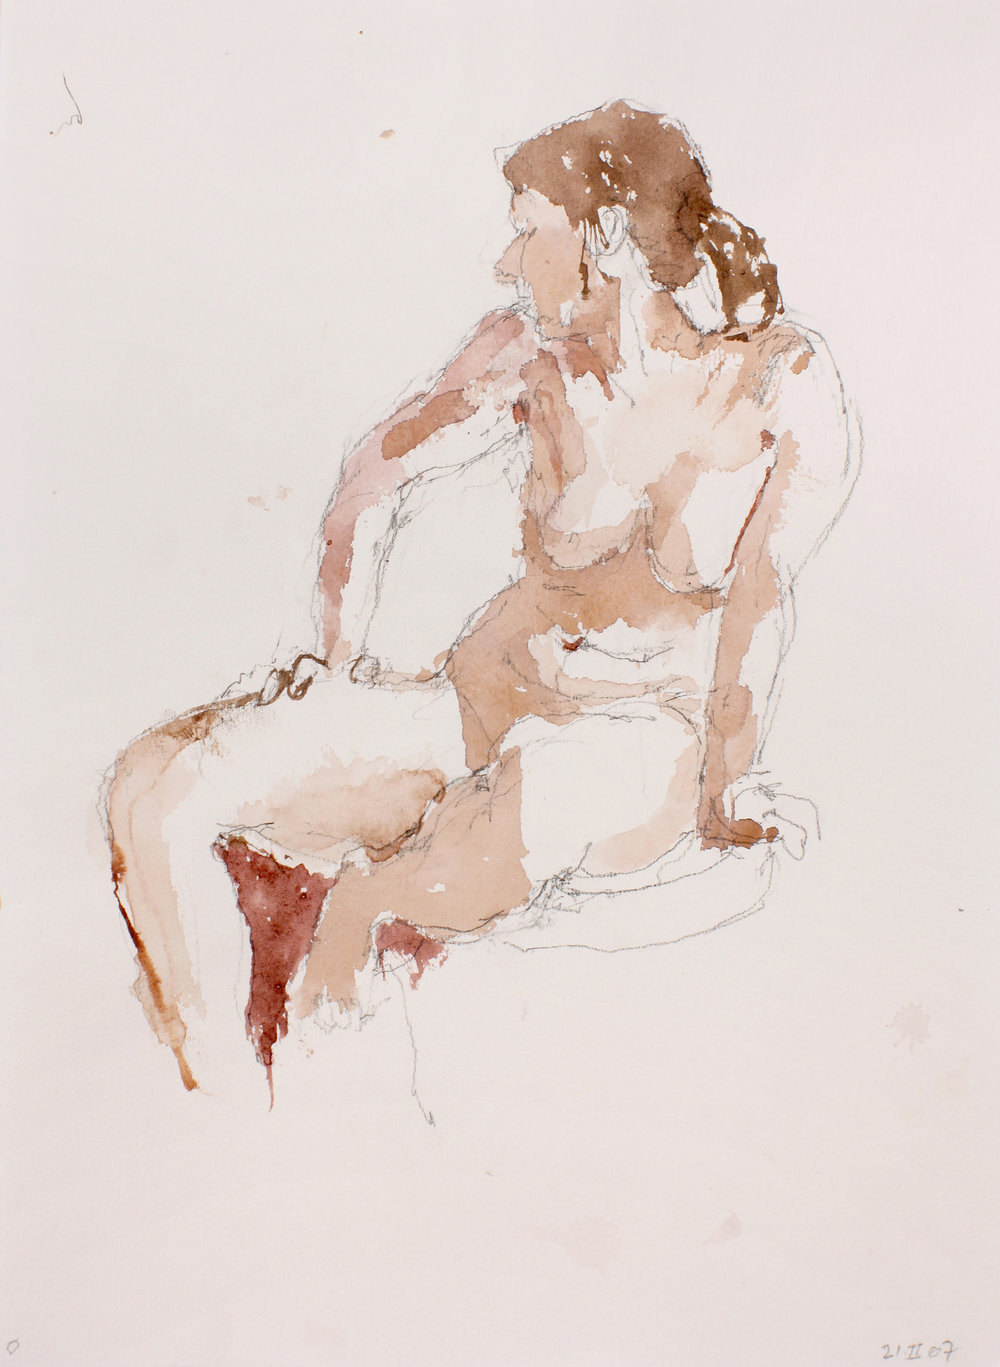 Seated Nude with Bent Arm on Thigh